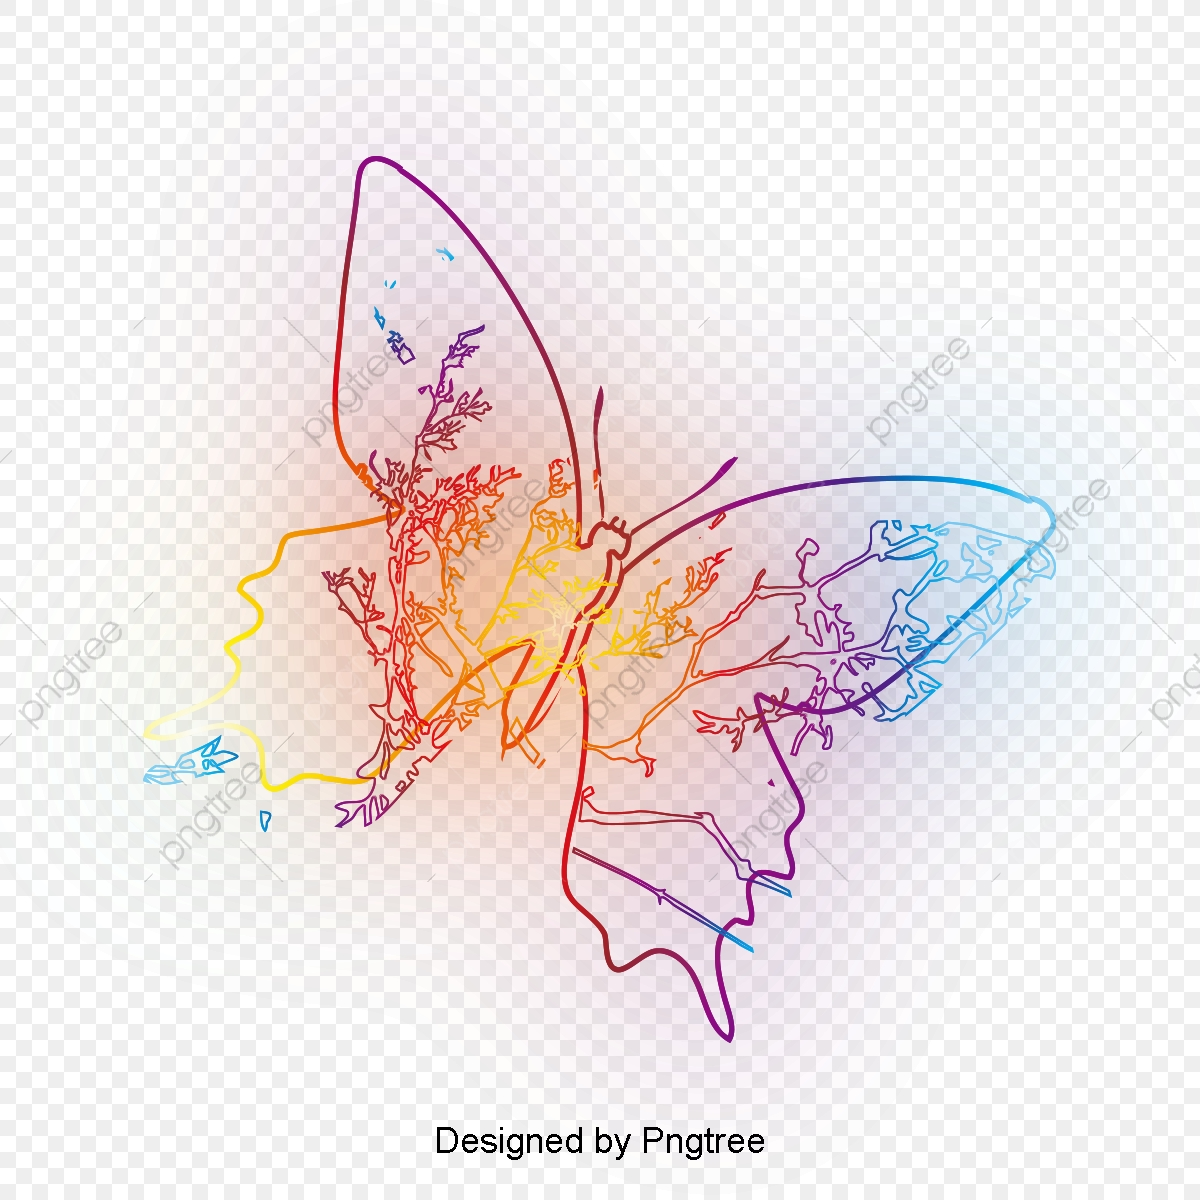 Simple Hand Painted Aesthetic Butterfly Design Butterfly Dreamy Insect Png Transparent Clipart Image And Psd File For Free Download